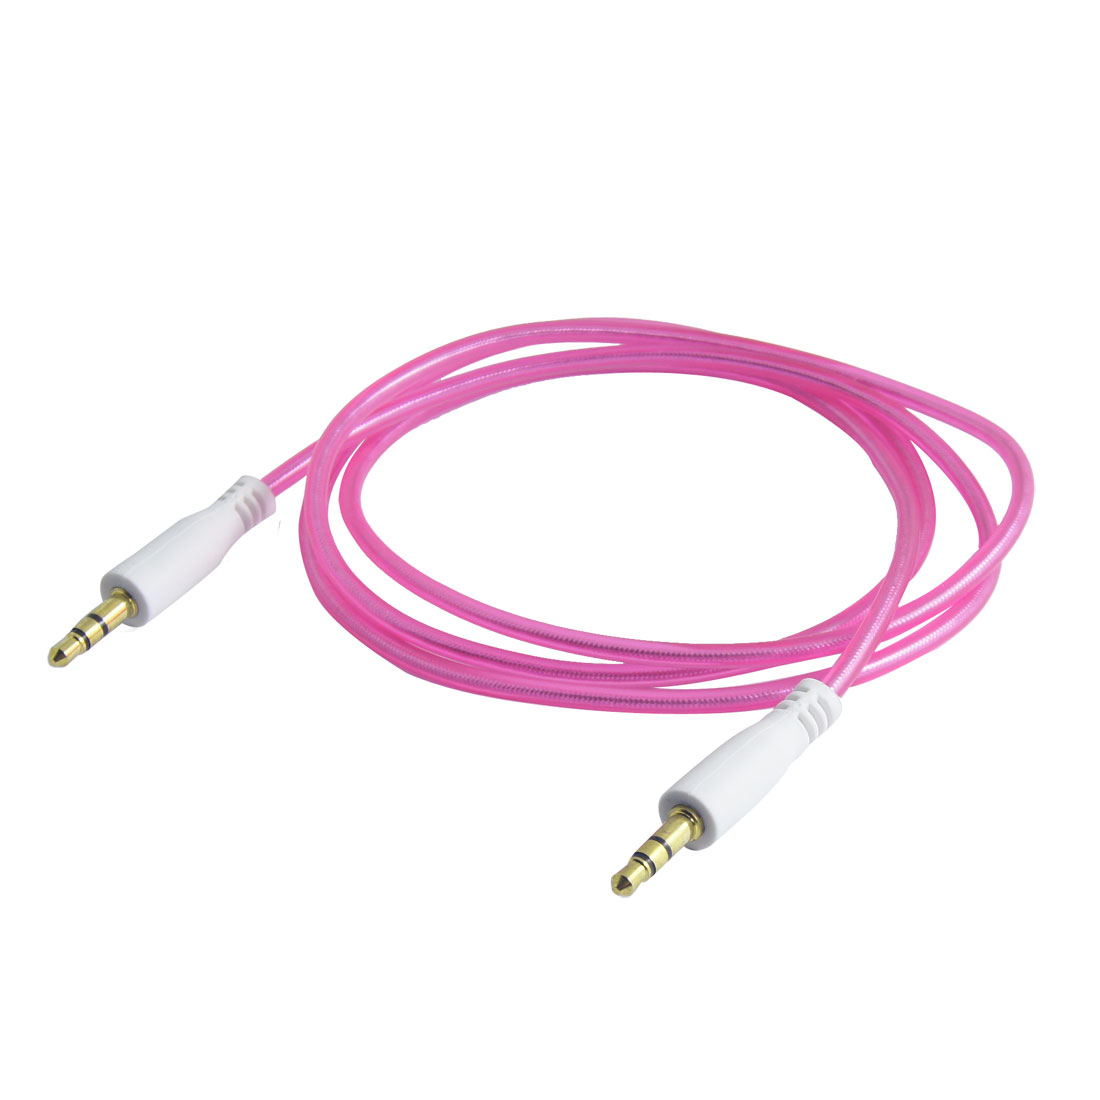 Fuchsia 3.5mm Male to Male Stereo Audio Cable Aux Cord 1M for PC Mp3